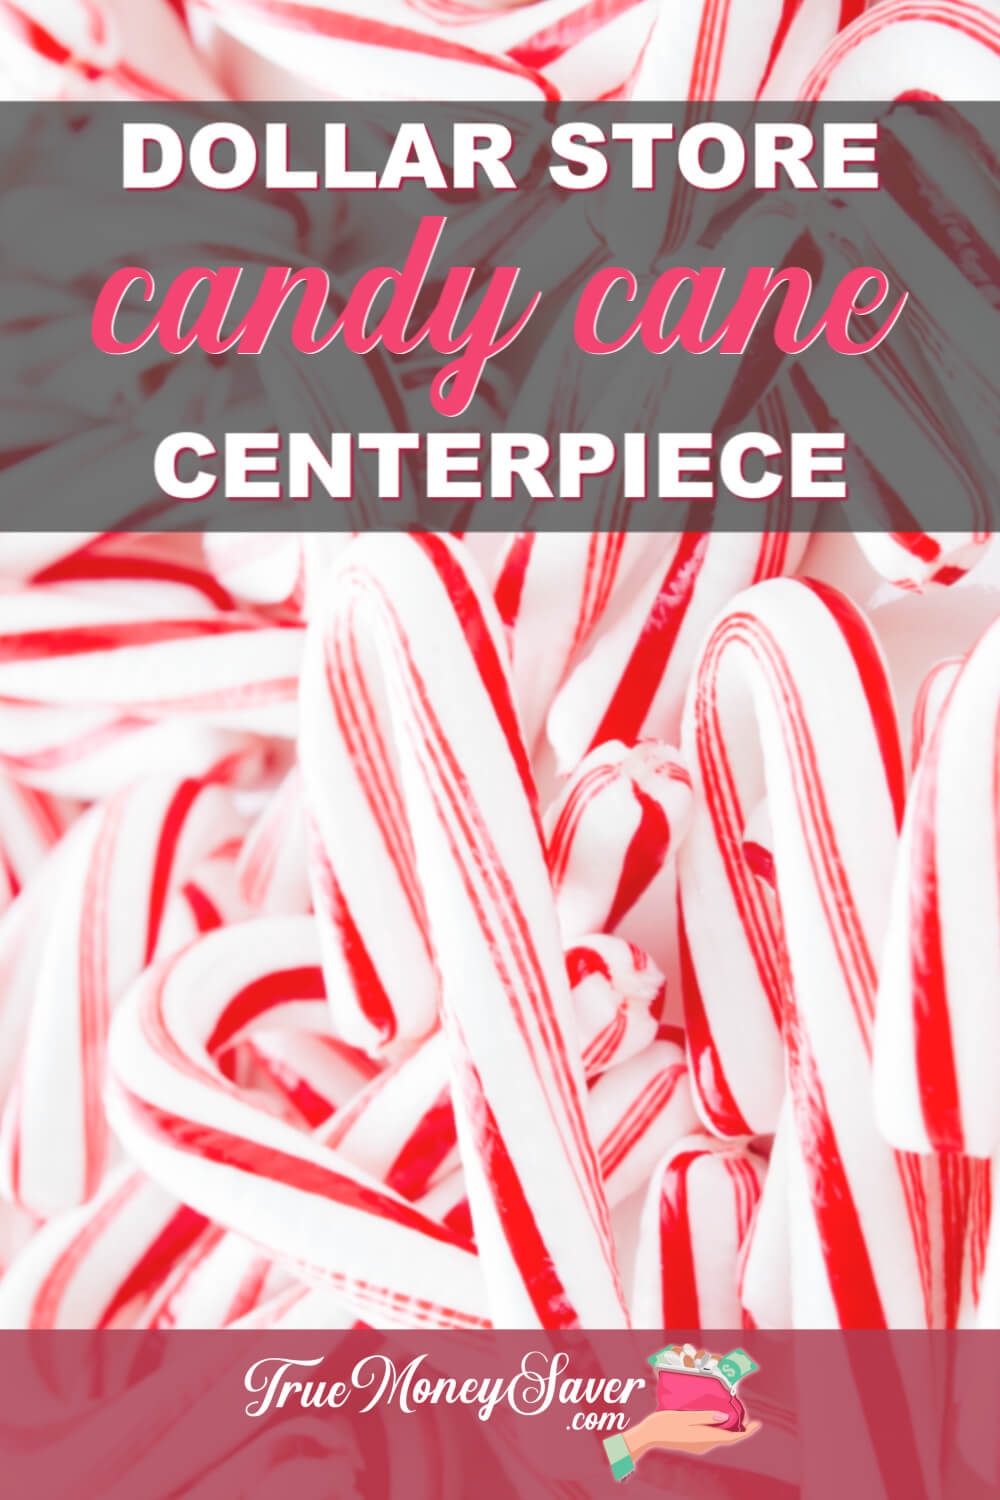 How To Make A Dollar Store Candy Cane Centerpiece